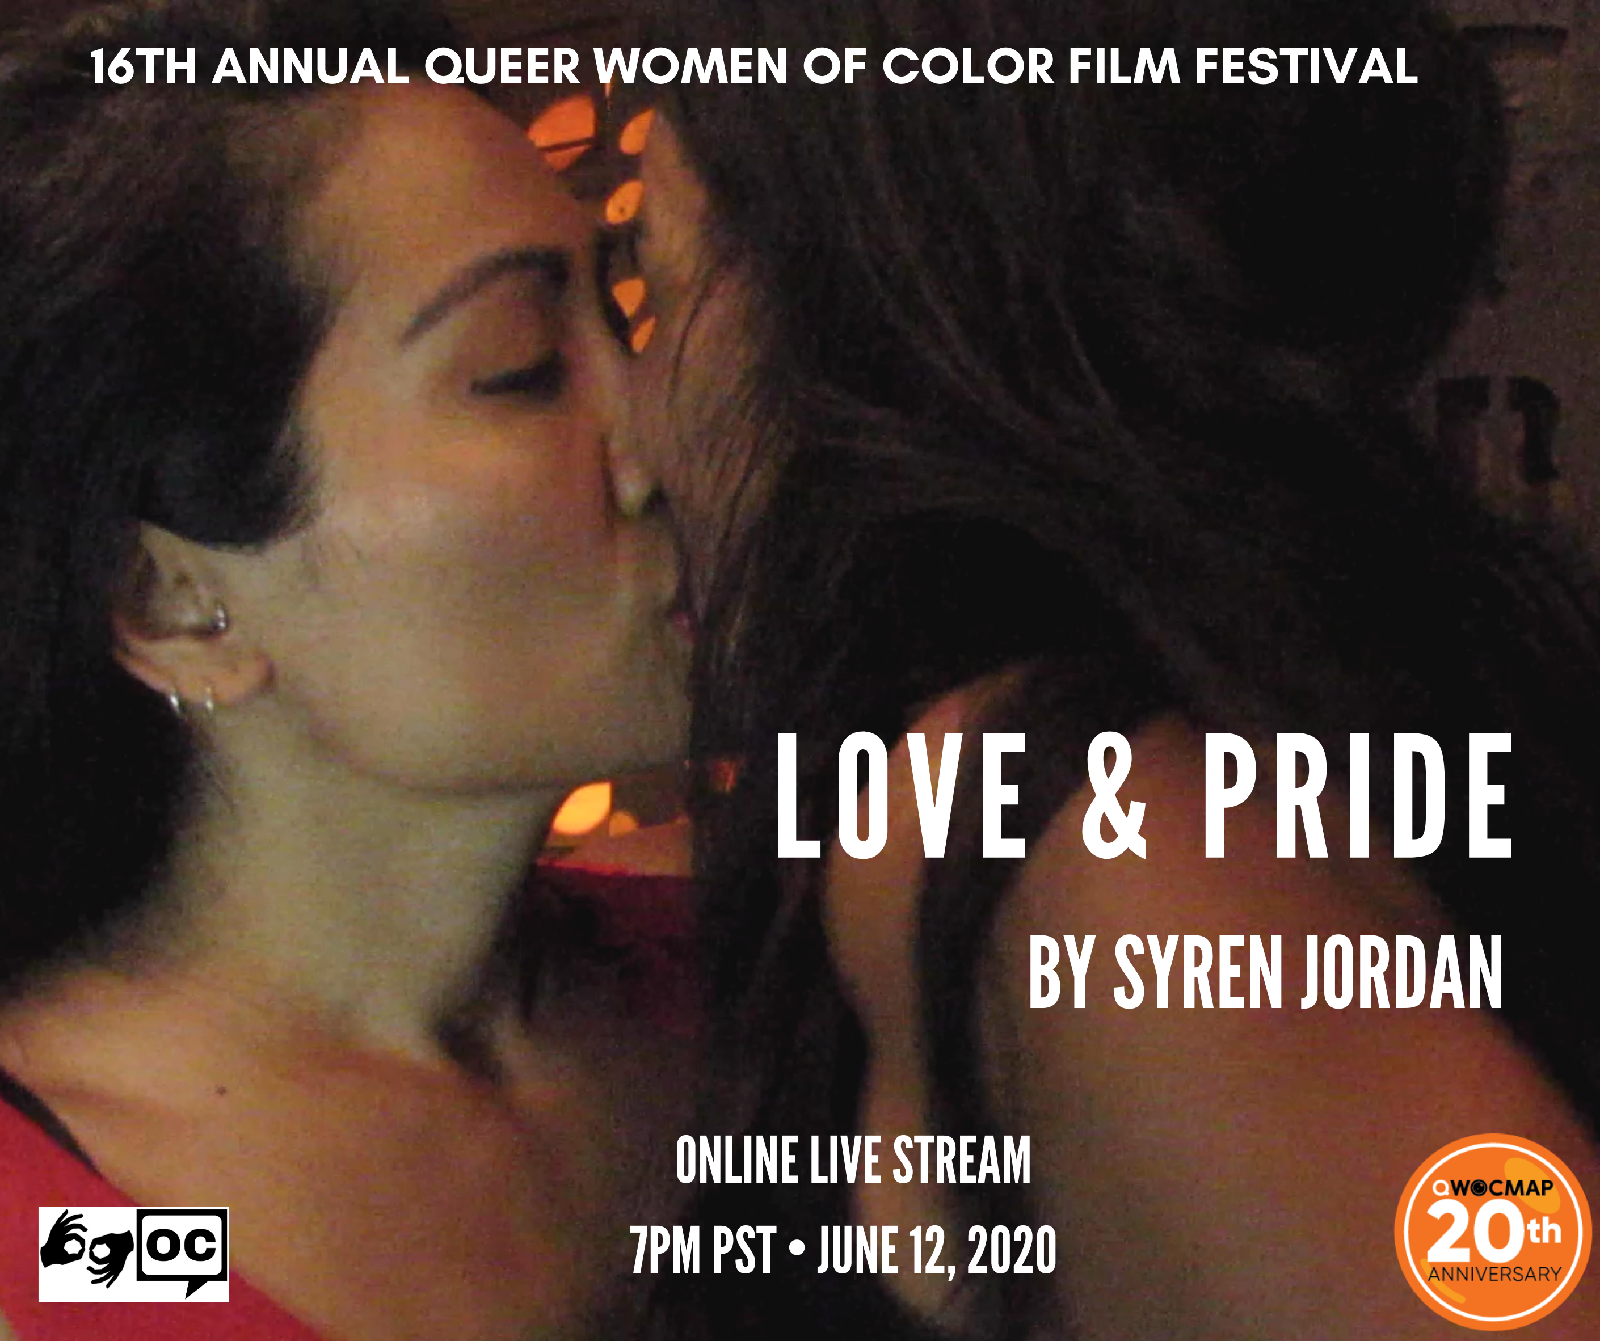 A Filipina woman with medium brown skin is kissing a medium brown skinned Puerto Rican woman in dark orange lighting. The top of the image reads 16th Annual Queer Women of Color Film Festival.Text below reads LOVE & PRIDE by Syren Jordan. The QWOCMAP logo is on the bottom right, the ASL and open captions logo are on the bottom left.Text reads ONLINE LIVE STREAM 7PM PST JUNE 12, 2020.